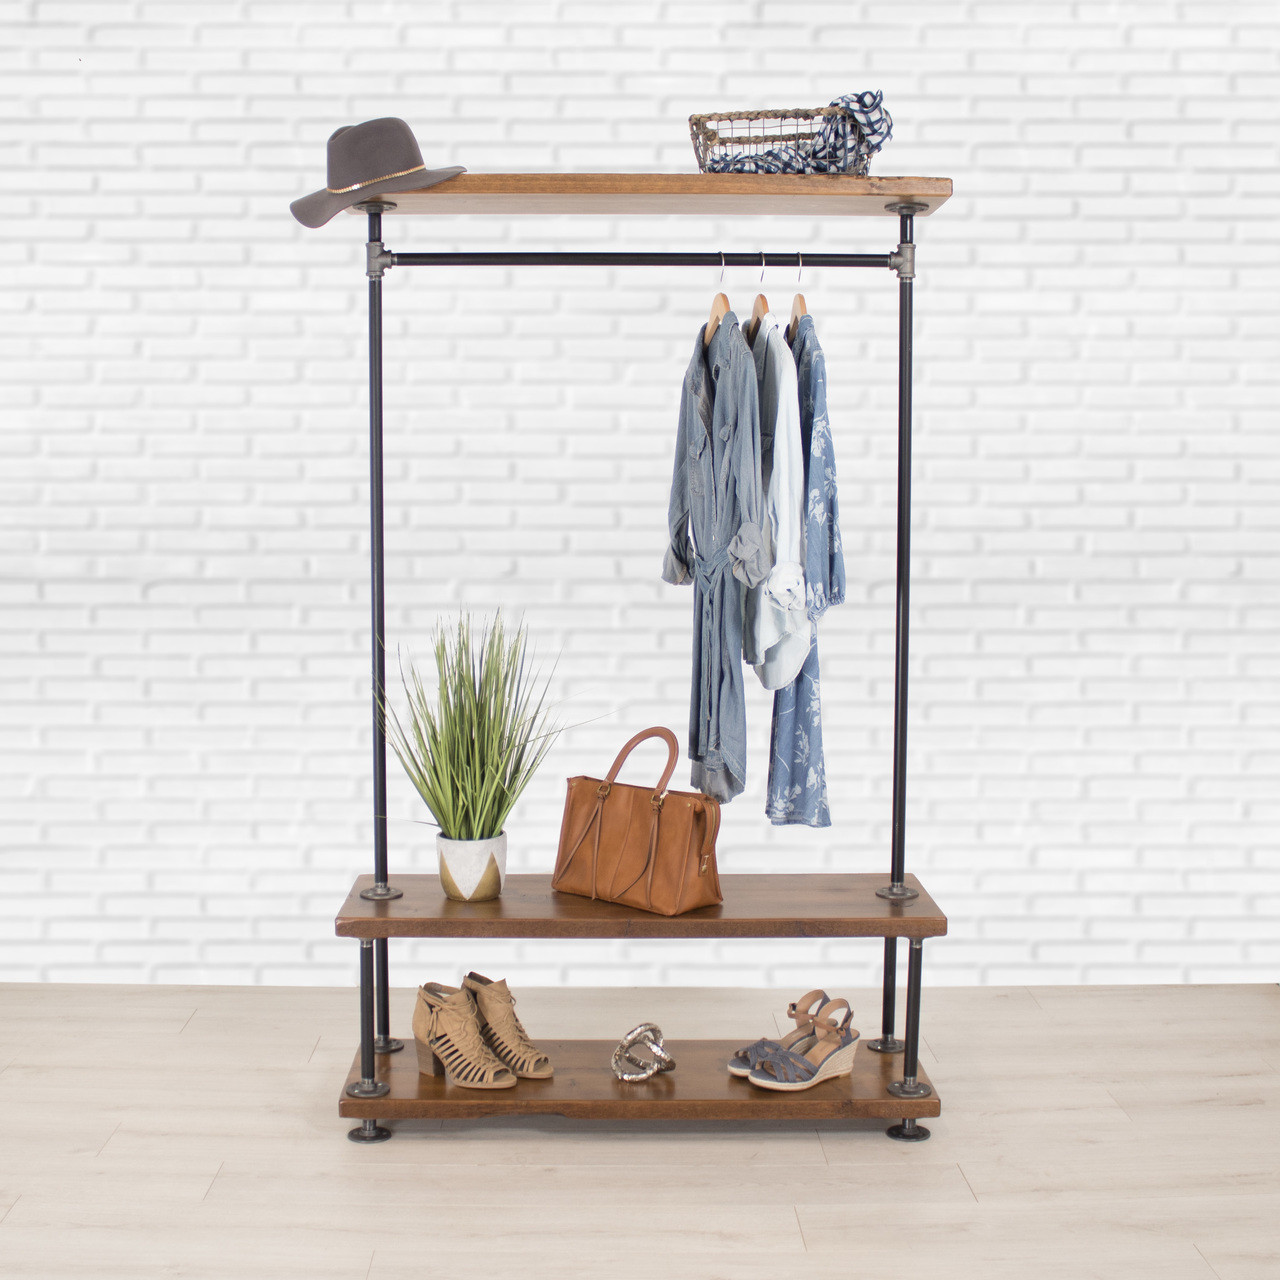 Industrial Pipe Clothing Rack with Cedar Wood Shelves